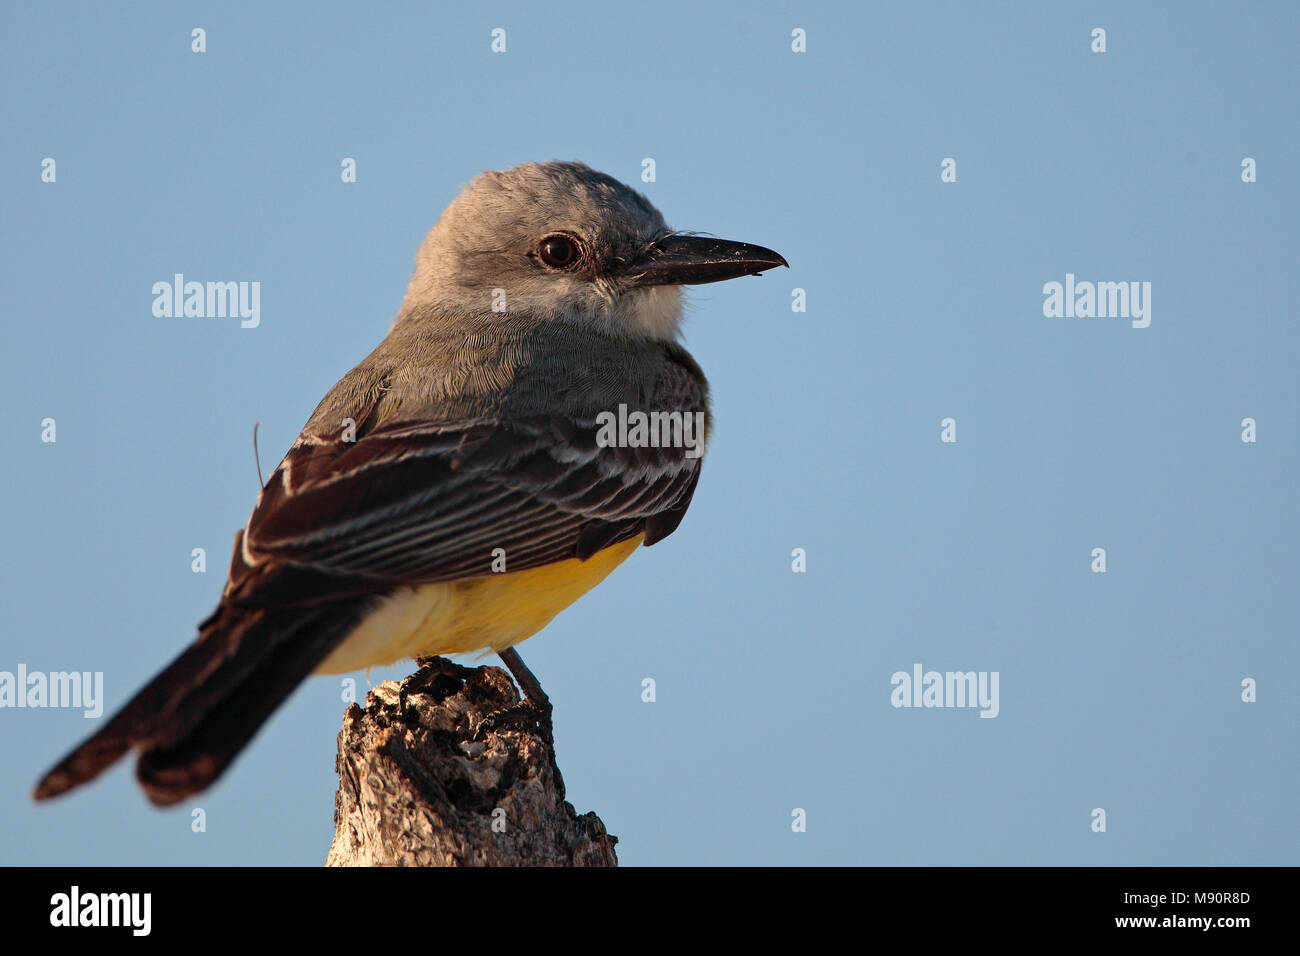 Tropische Koningstiran zittend op paal Mexico, Tropical Kingbird perched on pole Mexico - Stock Image